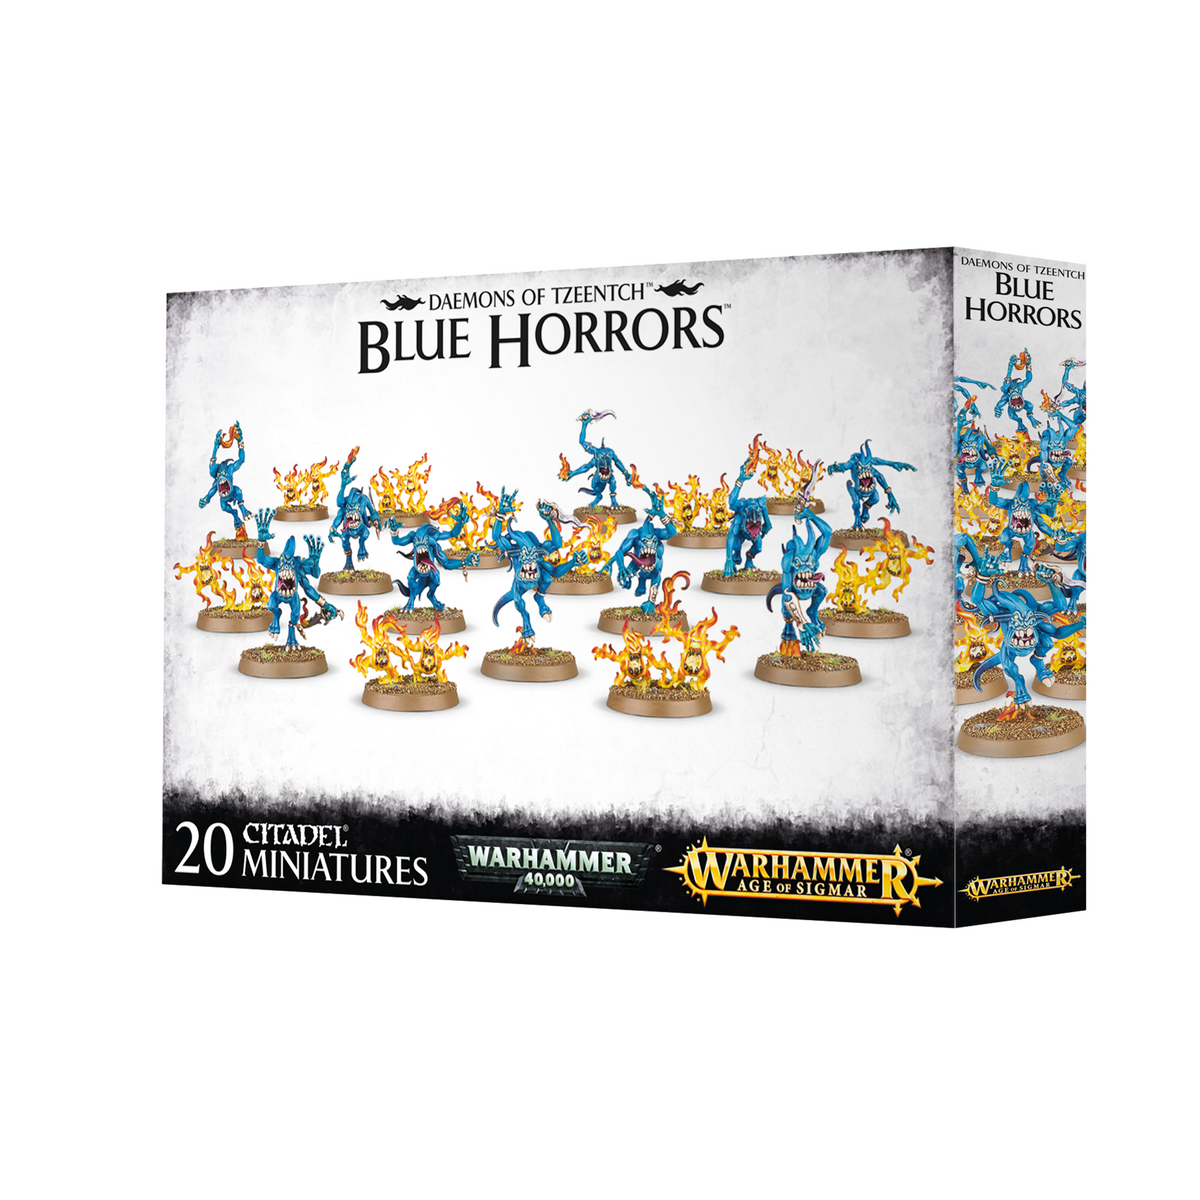 WARHAMMER AGE OF SIGMAR - DAEMONS OF TZEENTCH BLUE HORRORS